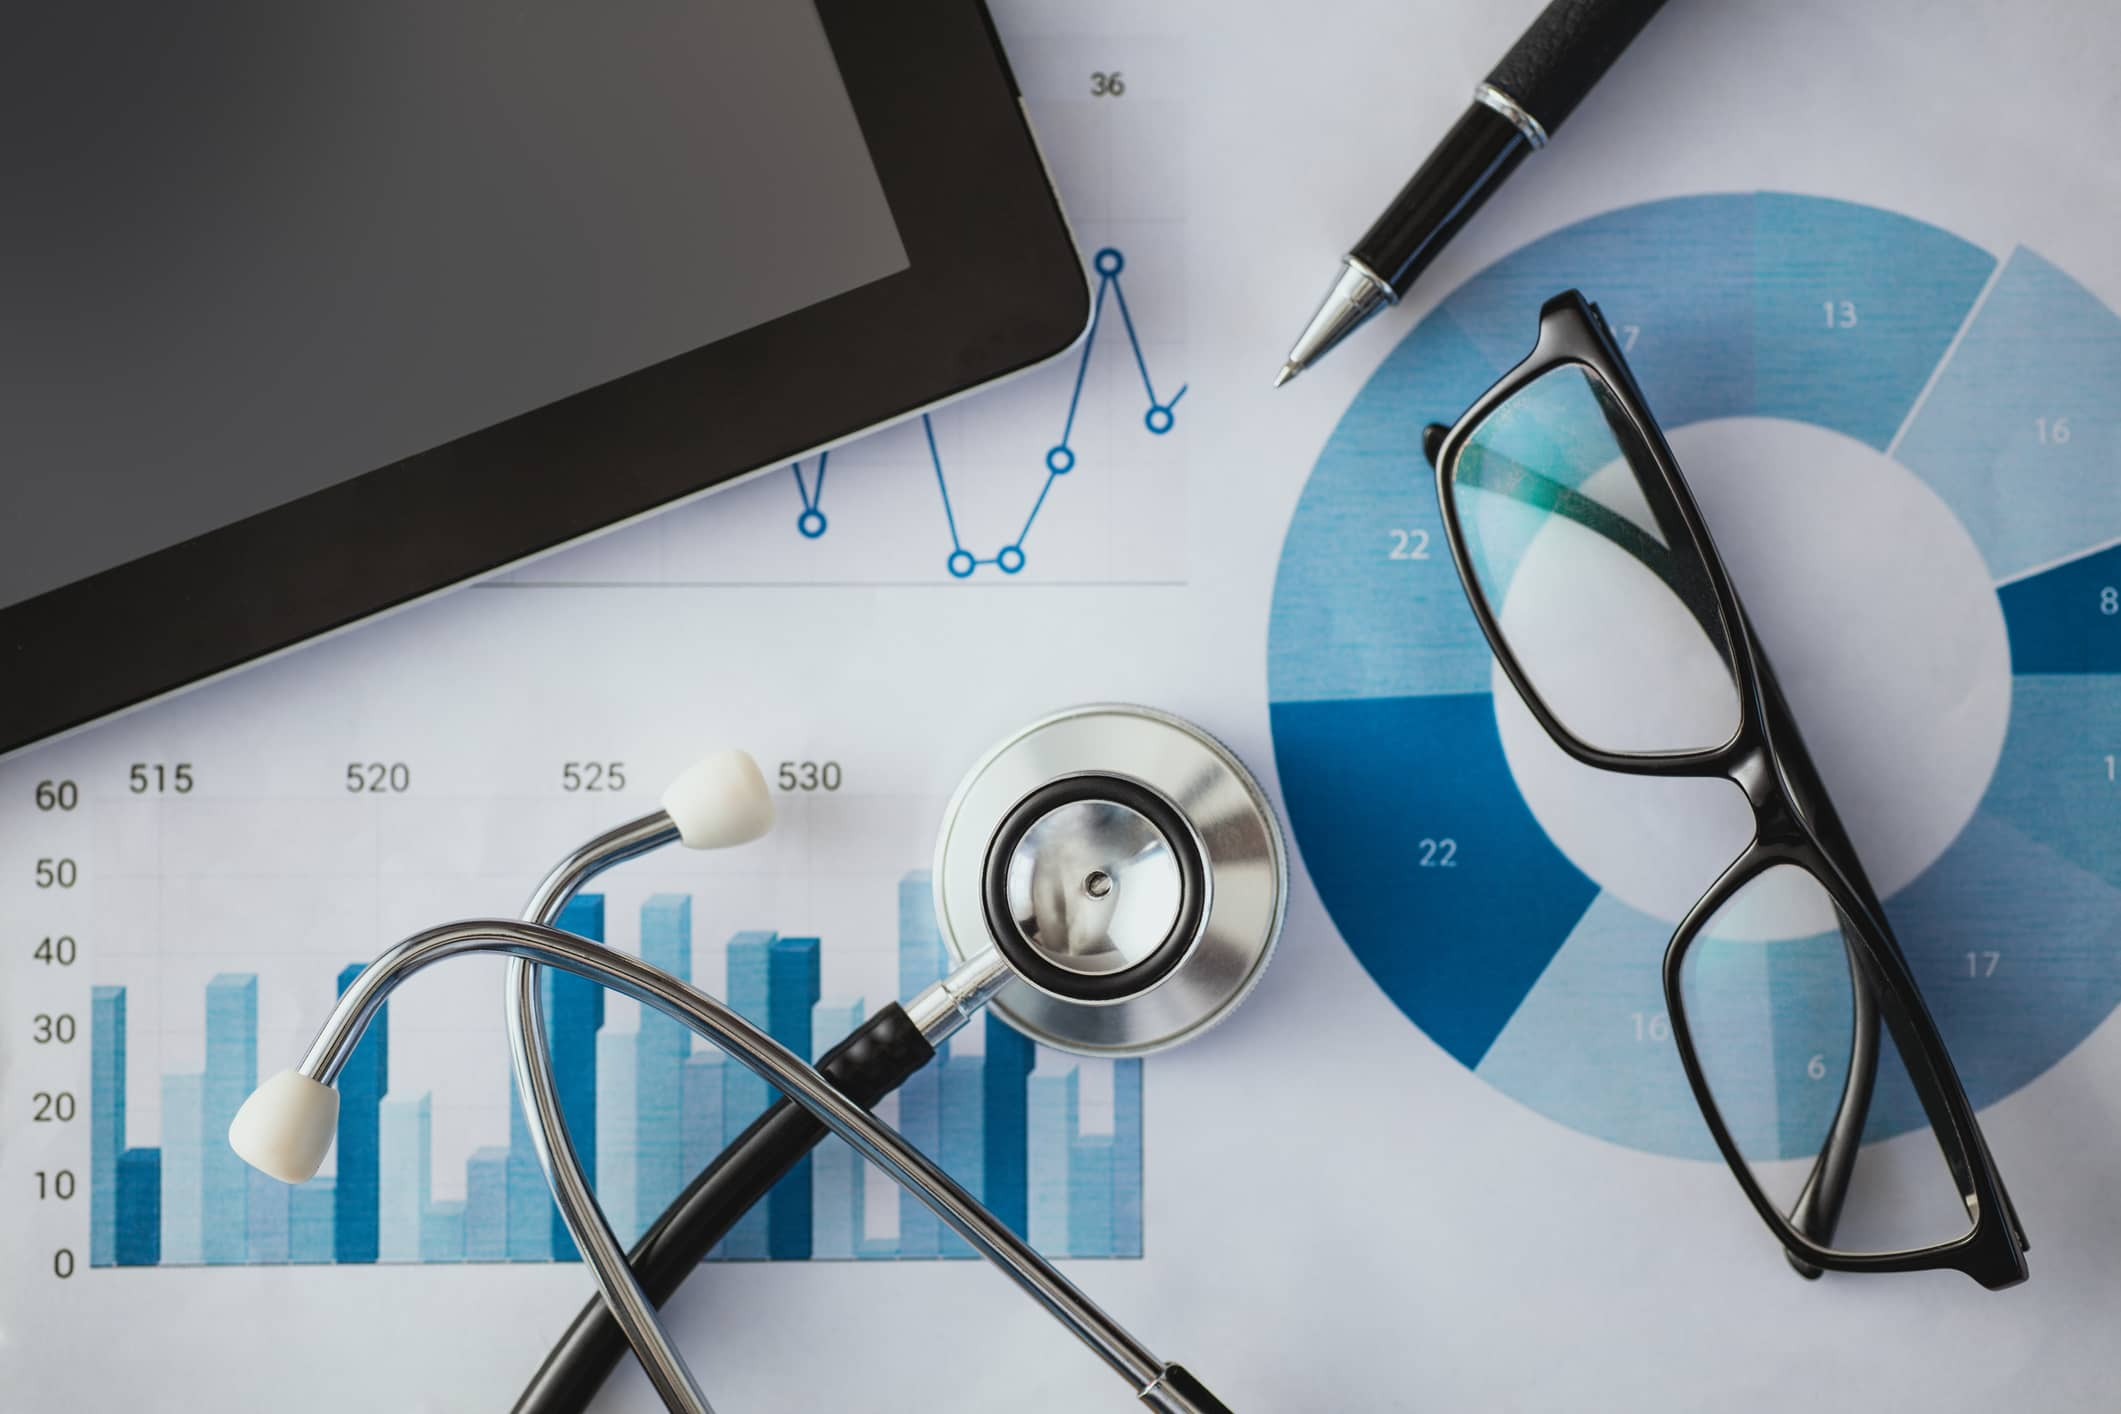 A stethoscope on a table with healthcare digital marketing strategies